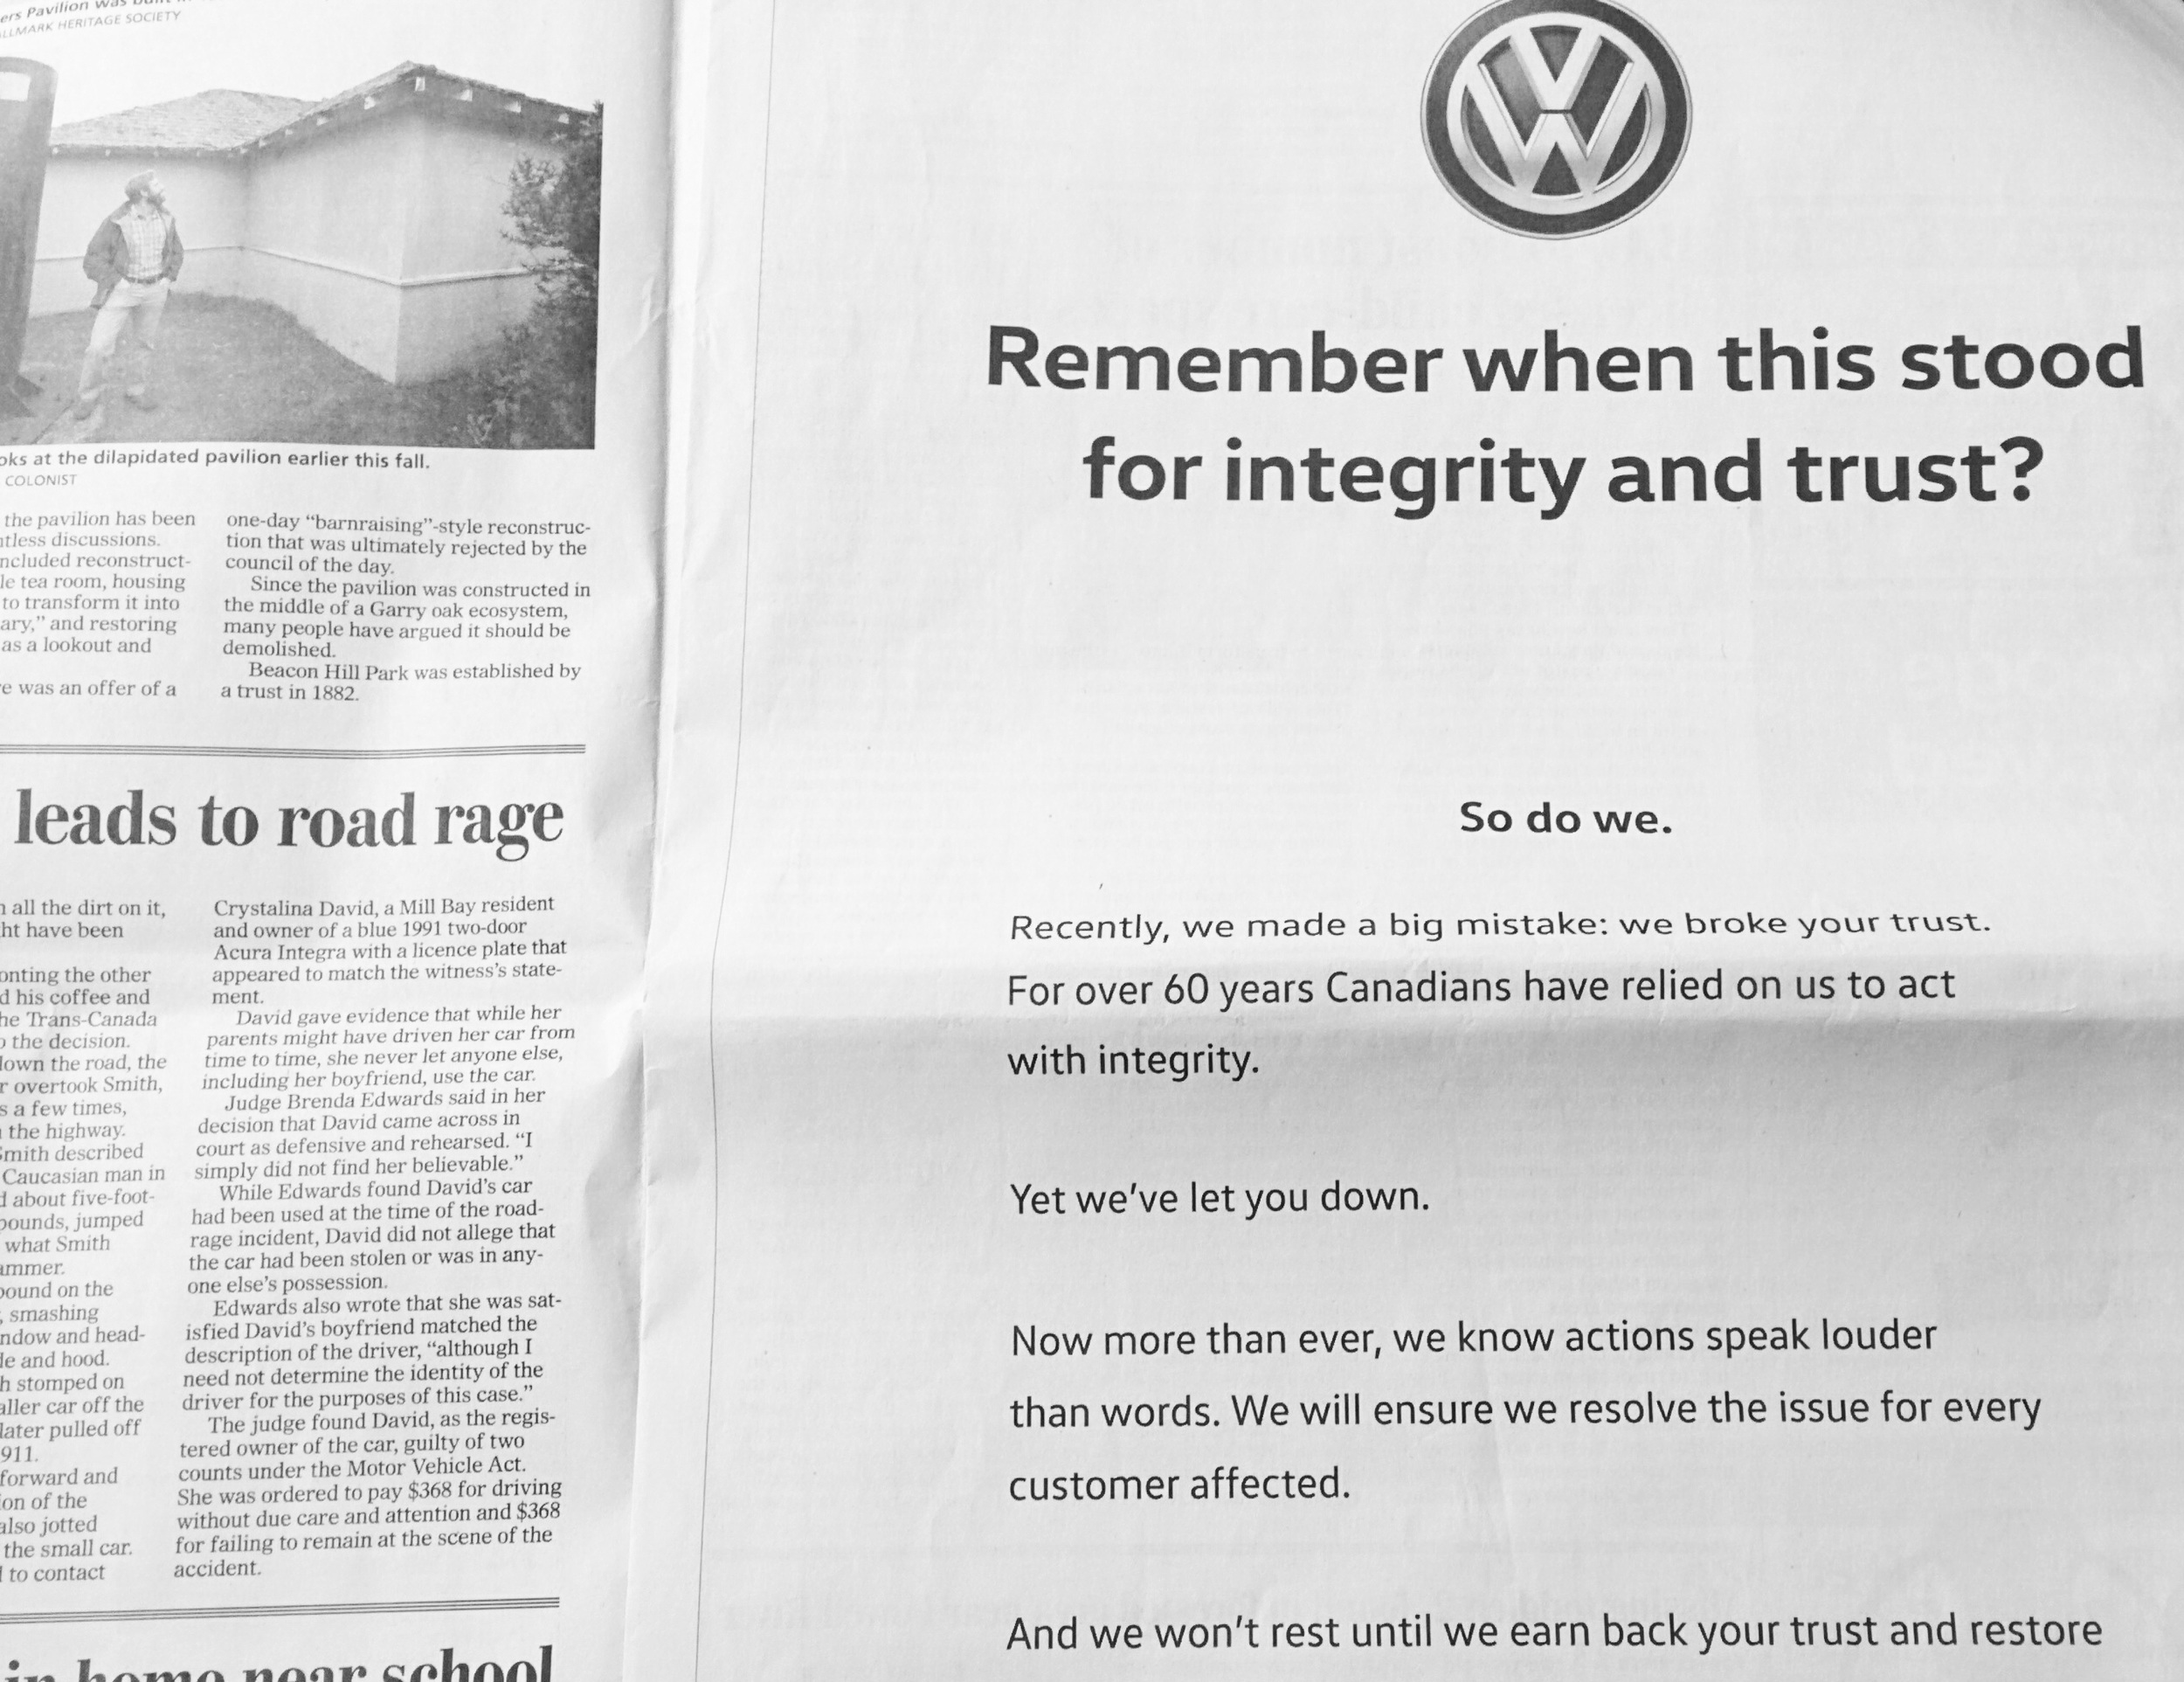 Volkswagen publicly acknowledged that they lied about nitrogen oxide emissions in December 2015.